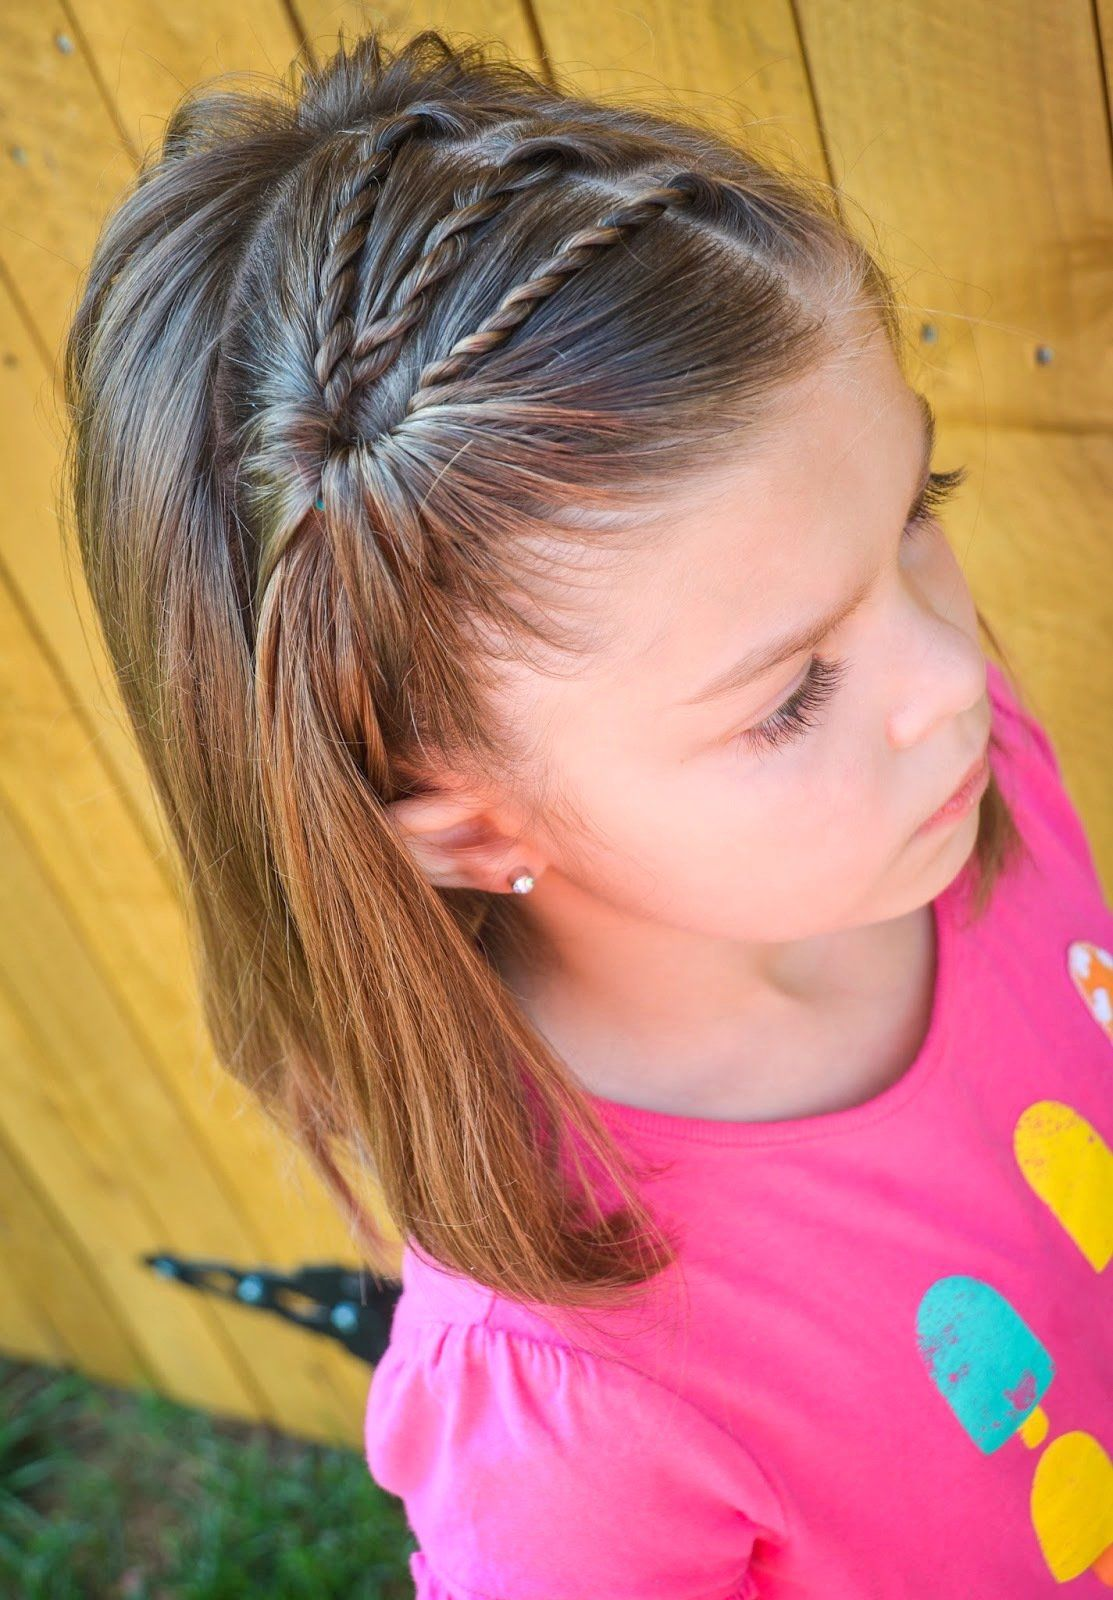 25 Little Girl Hairstyles You Can Do Yourself Hair Styles Kids Hairstyles Little Girl Hairstyles